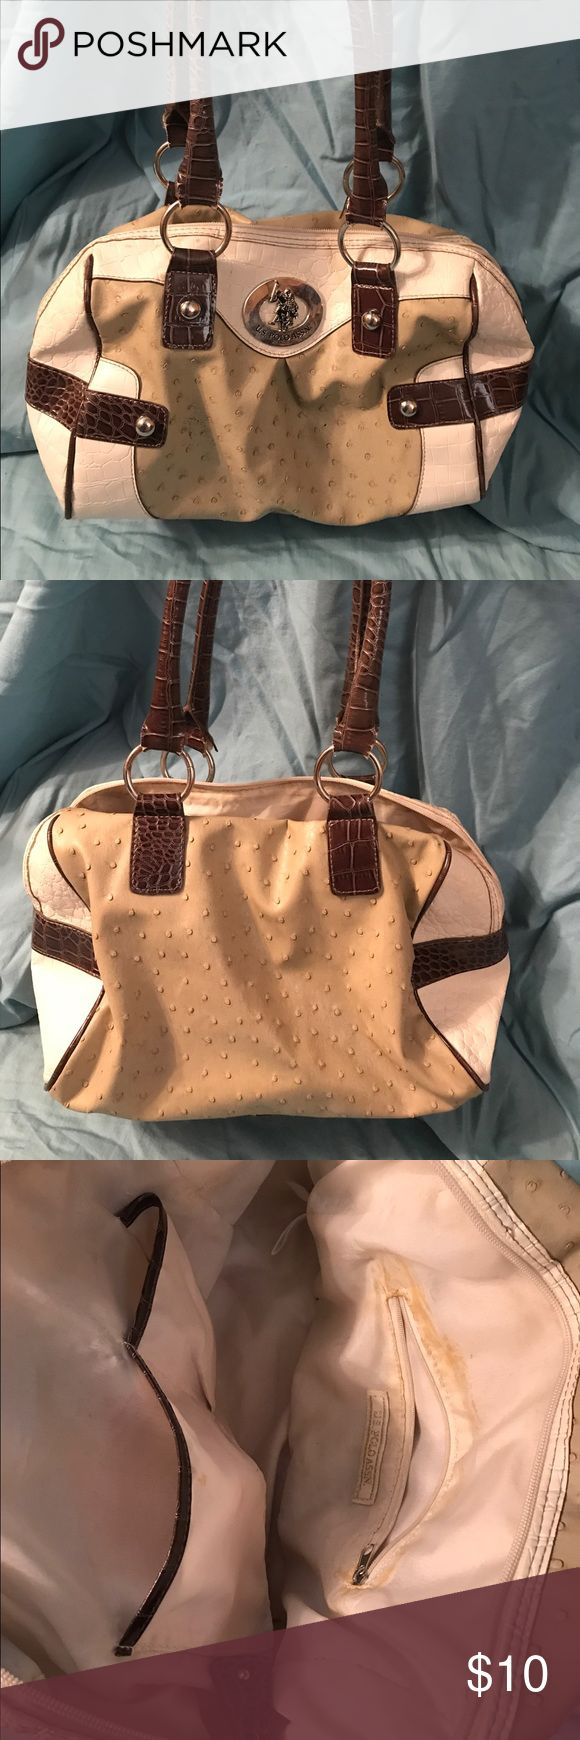 U.S. Polo Assn. Handbag This handbag has been used quite a bit but still has live in it. Bought with the blemishes on the outside and shows use on the inside. Please ask if you have any questions! Thanks for looking! U.S. Polo Assn. Bags Satchels